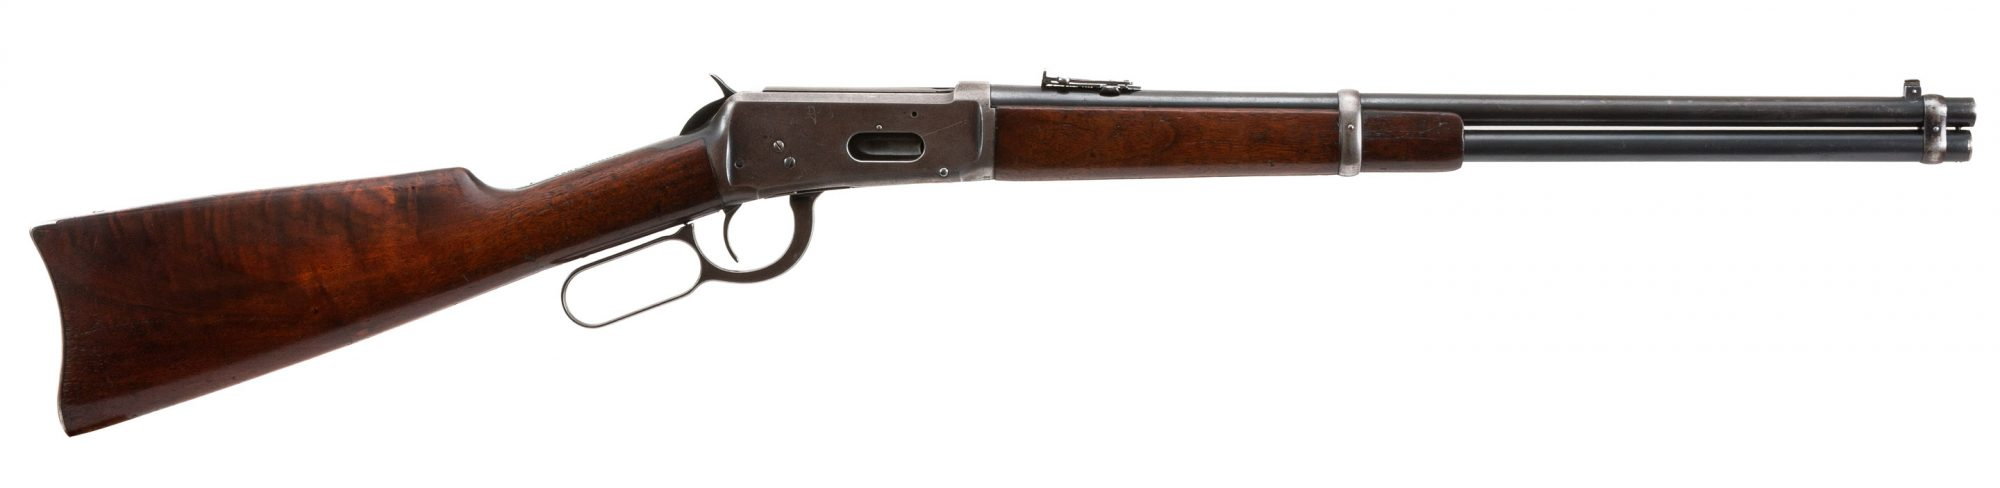 Photo of a pre-owned Winchester Model 1894 SRC from 1920, for sale by Turnbull Restoration of Bloomfield, NY